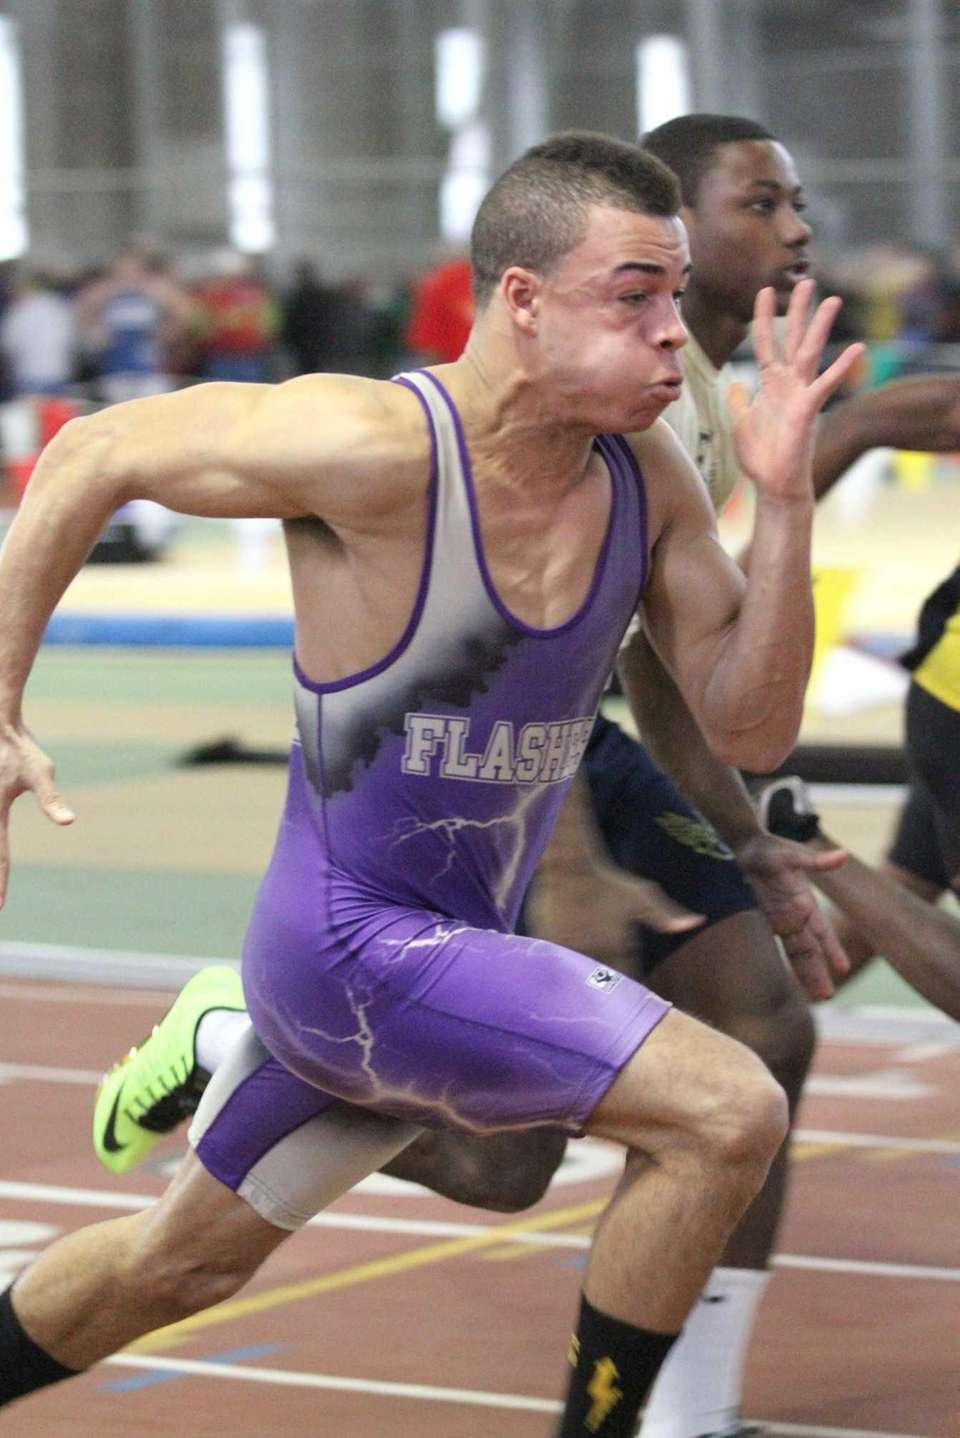 Sayville's Christopher Belcher heads to the finish line